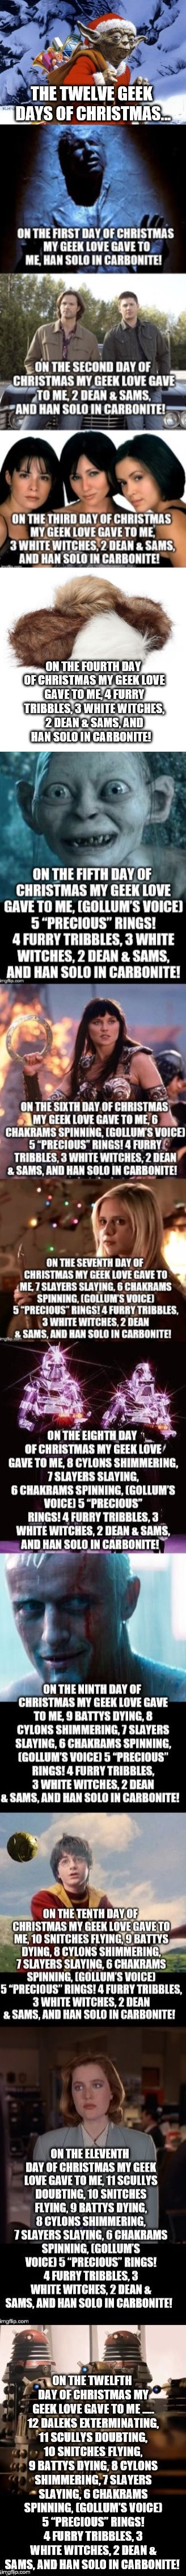 Introducing The Twelve Geek Days of Christmas! My wife and I wrote it last year.  Merry Christmas everyone!  | THE TWELVE GEEK DAYS OF CHRISTMAS... ON THE FOURTH DAY OF CHRISTMAS MY GEEK LOVE GAVE TO ME, 4 FURRY TRIBBLES, 3 WHITE WITCHES, 2 DEAN & SAM | image tagged in 12 days of christmas,jbmemegeek,geek,christmas,christmas memes,star wars | made w/ Imgflip meme maker